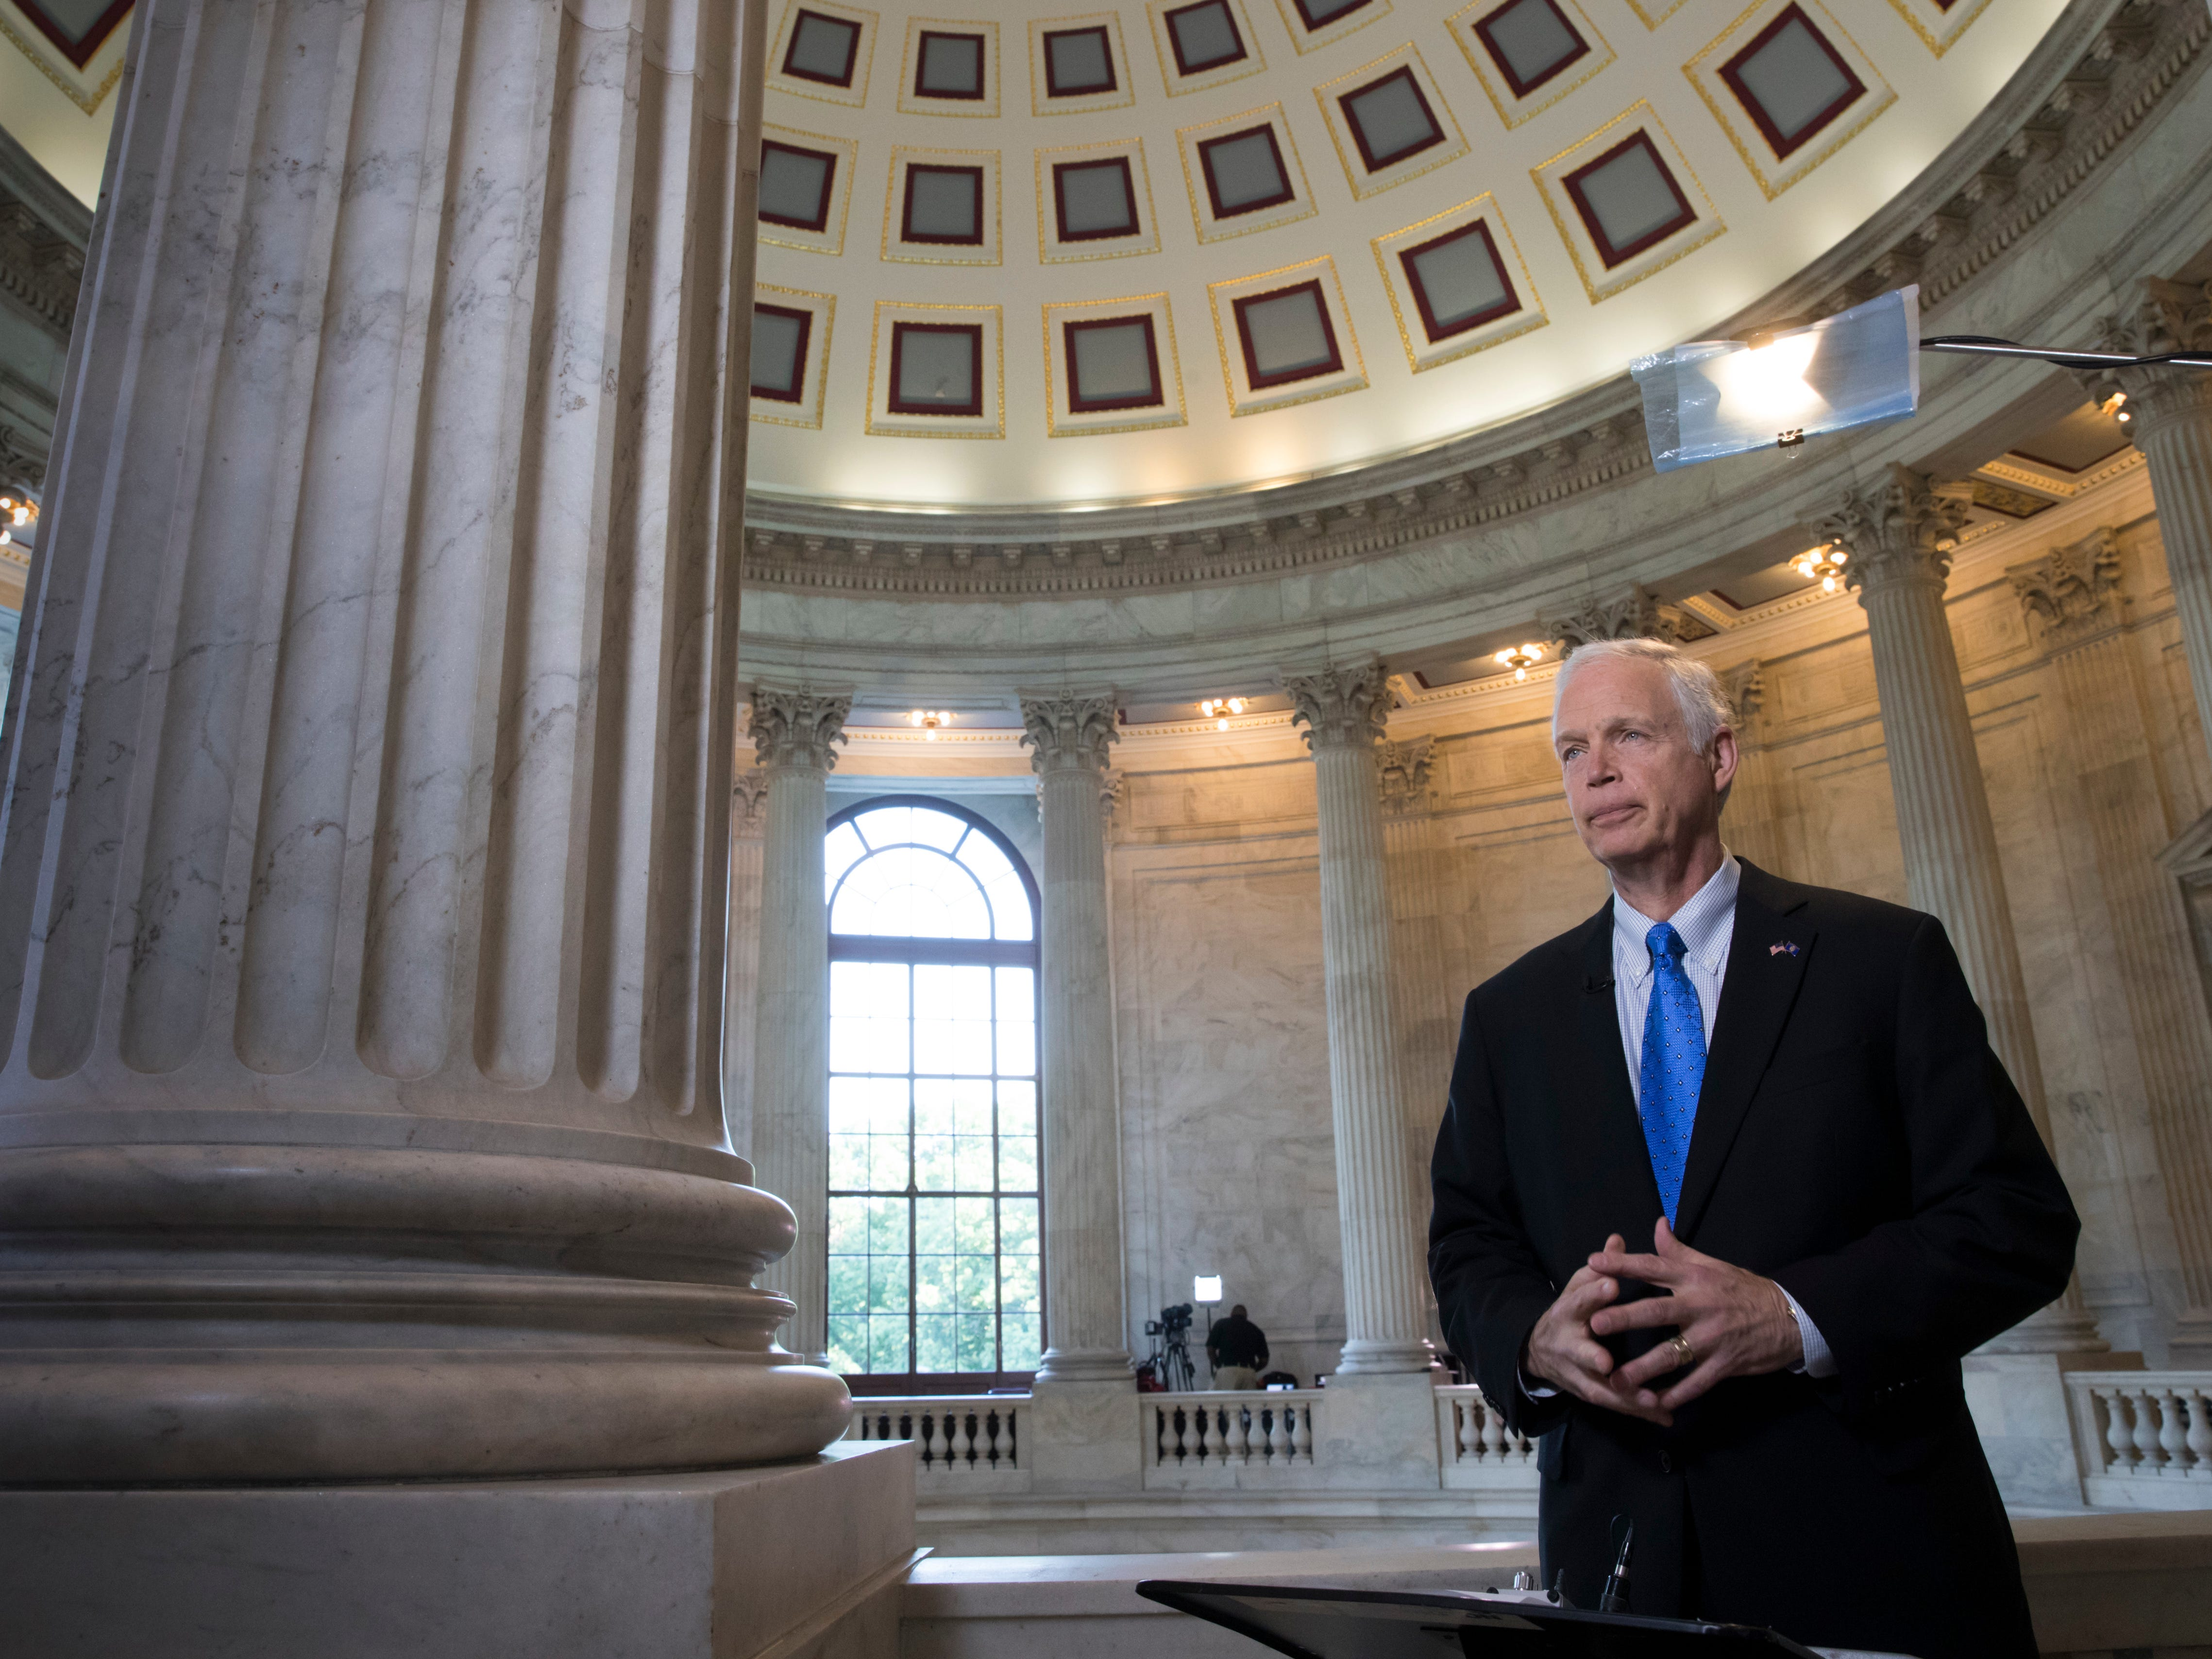 Sen. Ron Johnson, R-Wisc., waits for the start of a TV news interview on Capitol Hill as Senate Majority leader Mitch McConnell plans to release a draft of the GOP's long-awaited healthcare bill, crafted behind closed doors, which represents the party's long-awaited attempt to scuttle much of President Barack Obama's health care law.